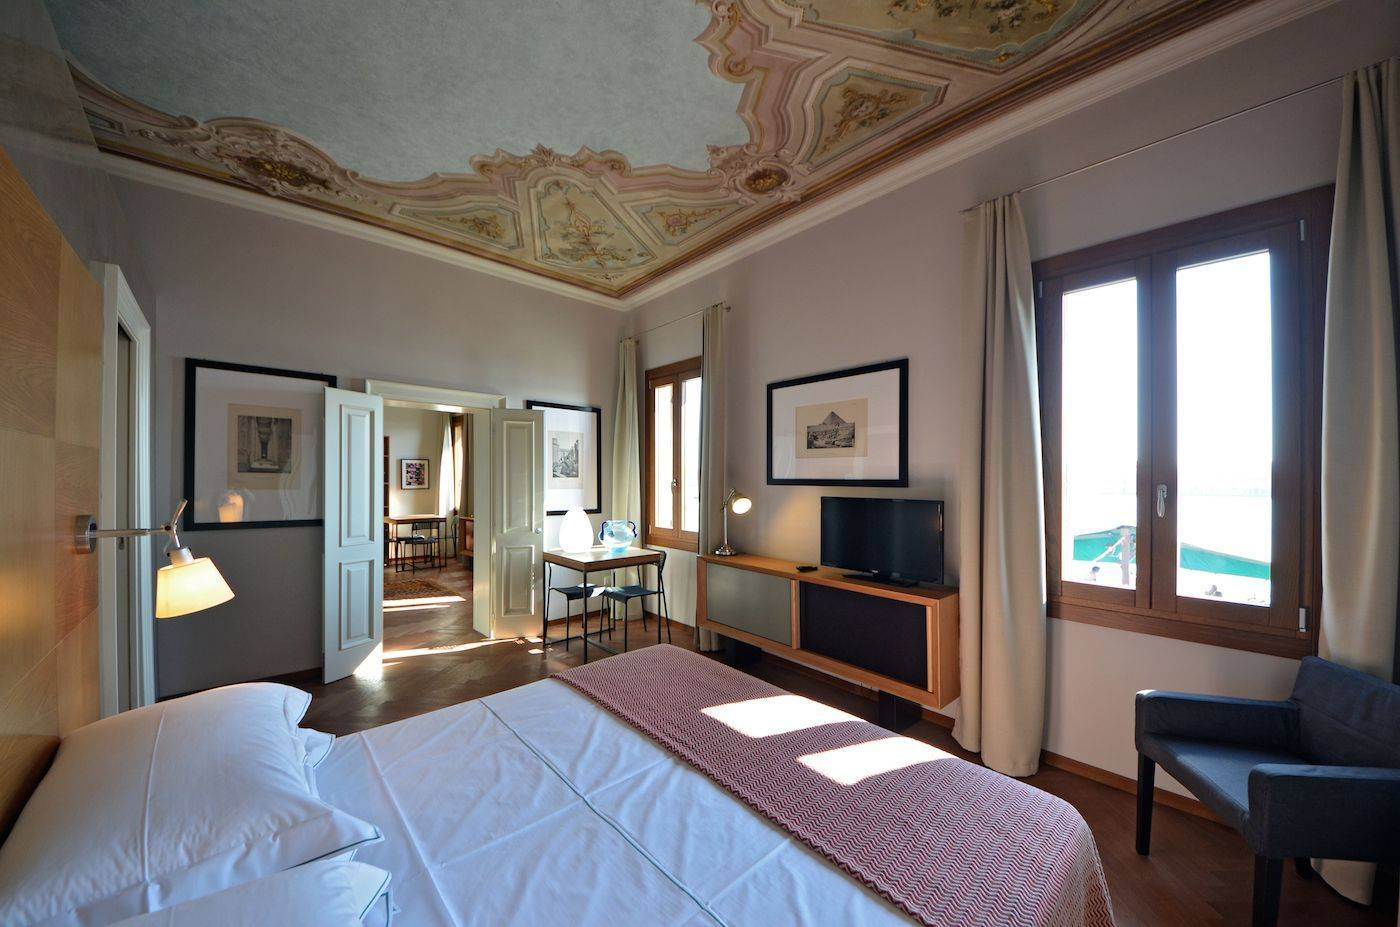 master bedroom with frescoed ceiling and canal view